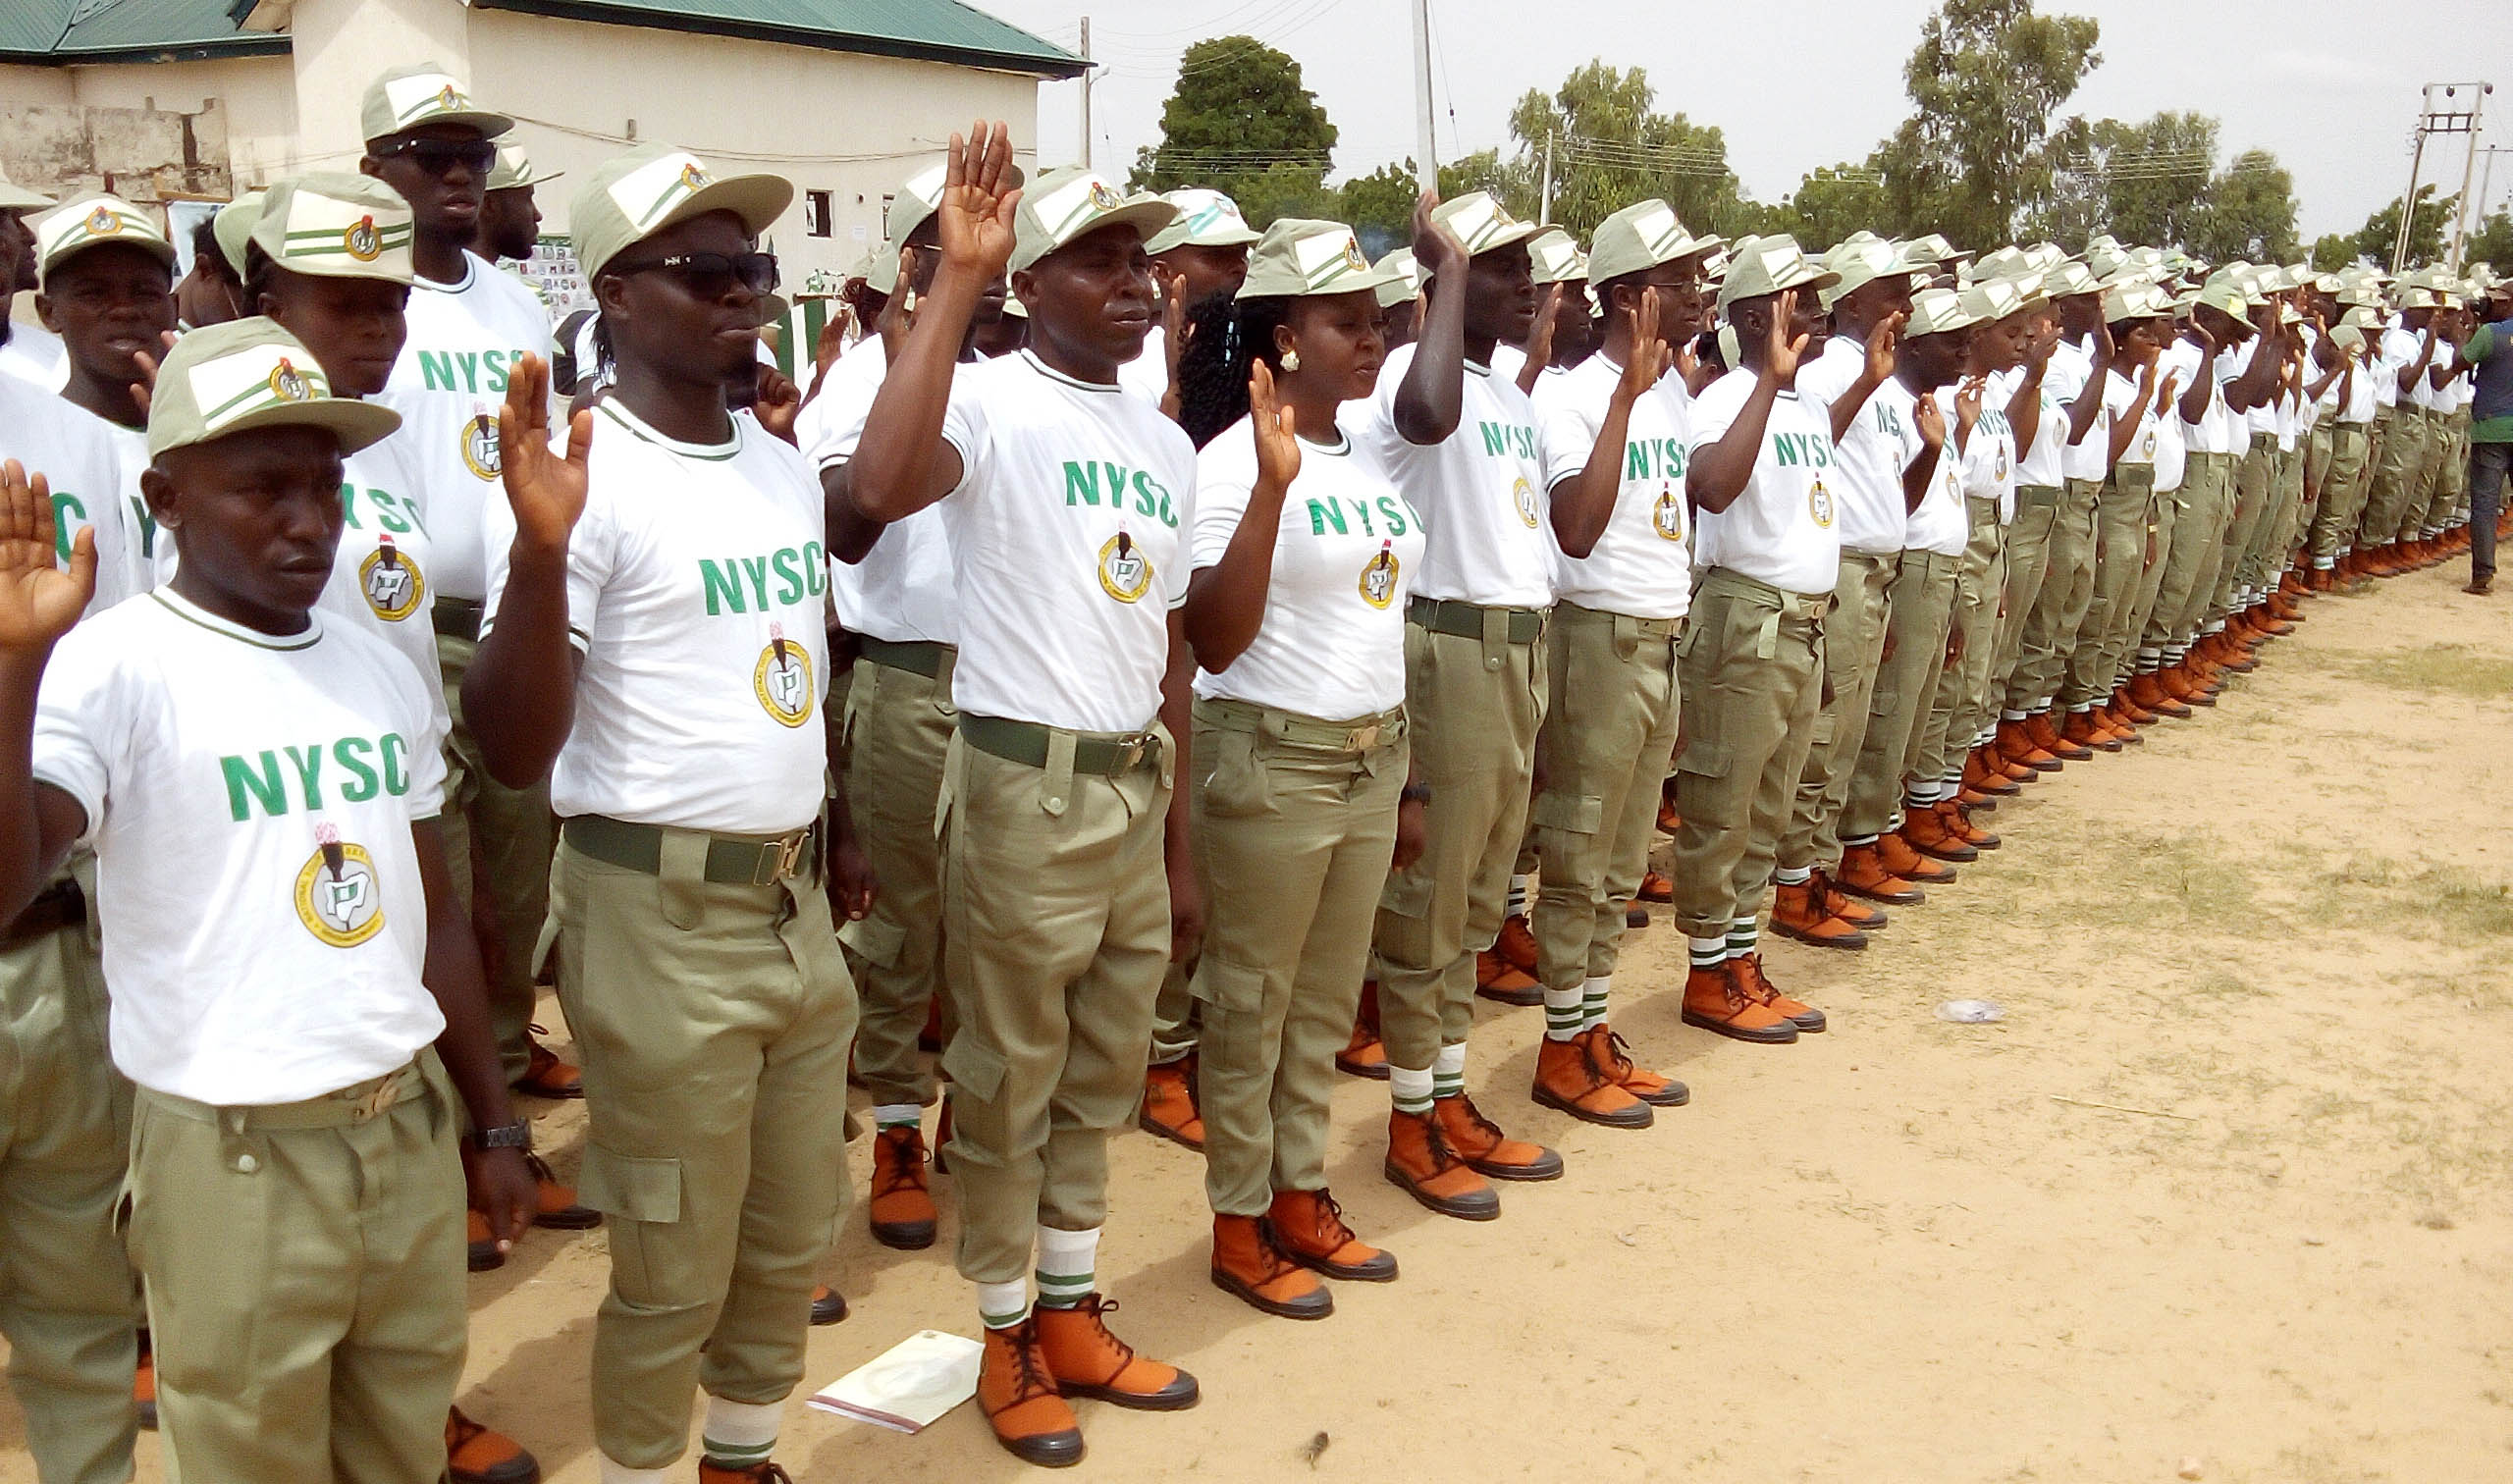 ARCON tells NYSC to Post Architecture Graduates to Firms not Schools